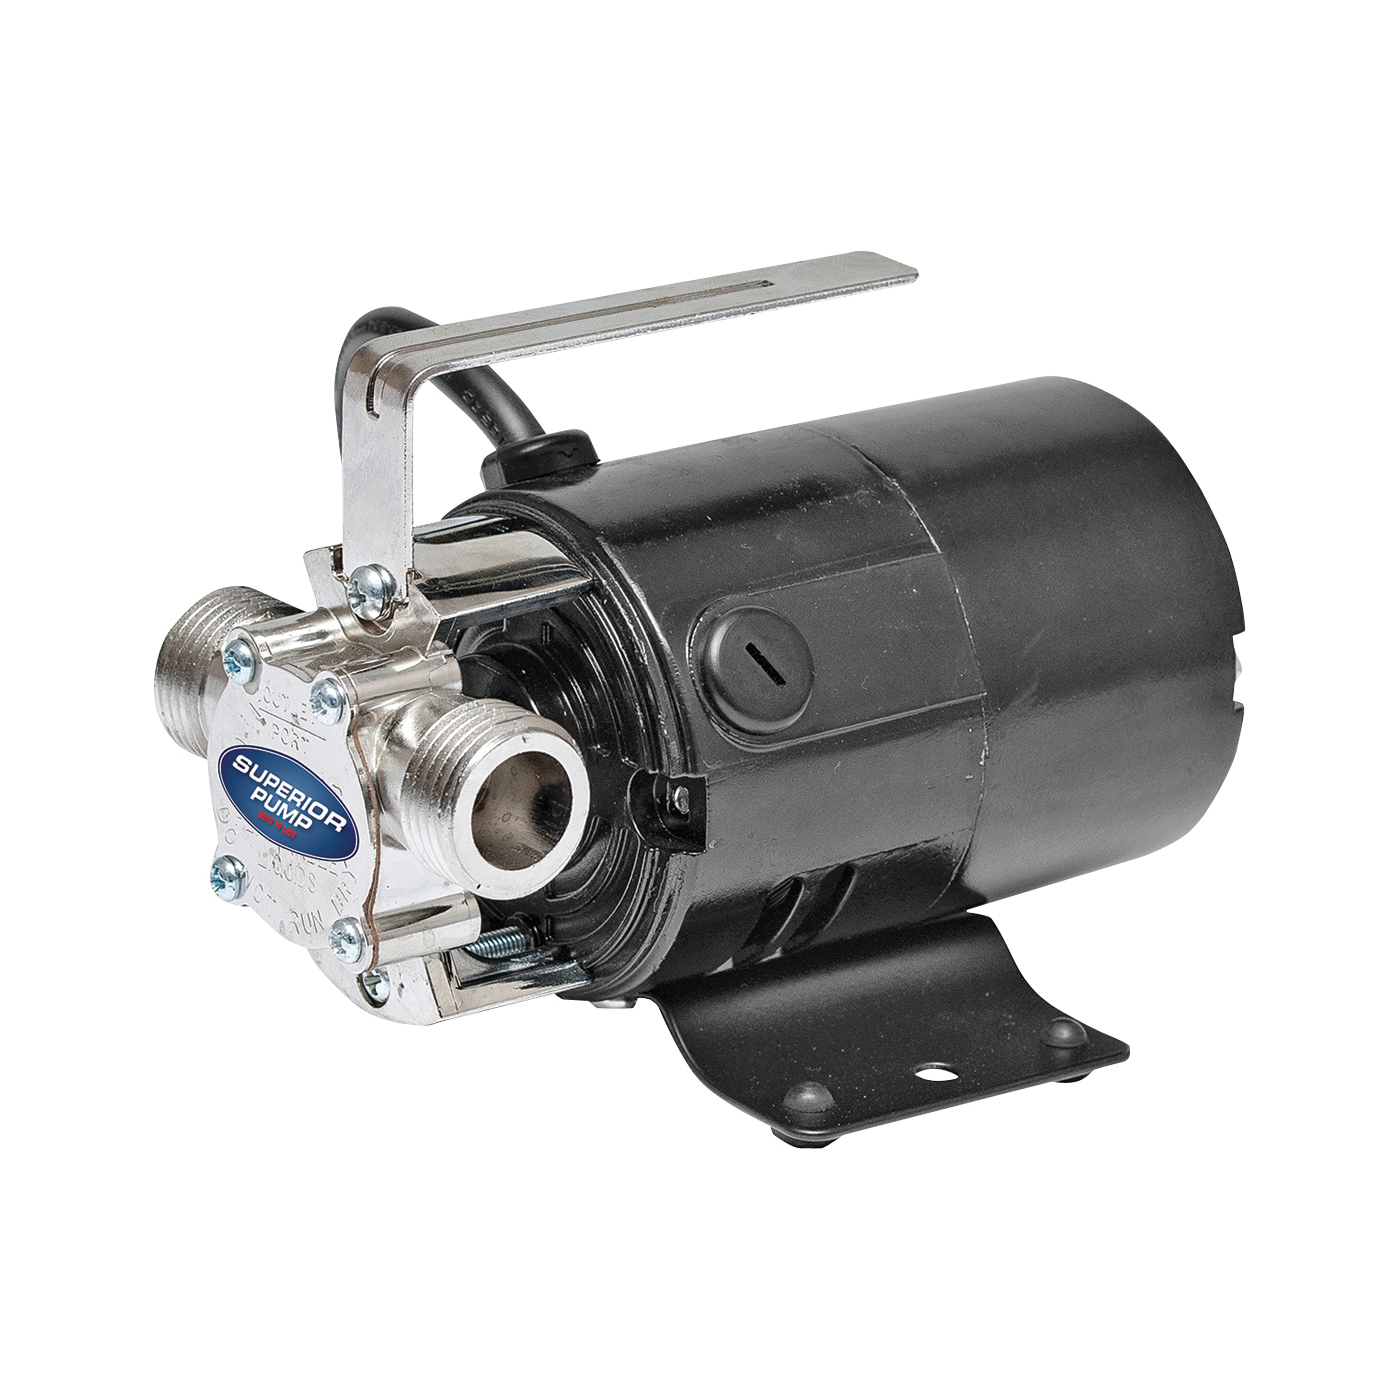 Picture of SUPERIOR PUMP 90040 Transfer Pump, 2.3 A, 115 V, 0.1 hp, 3/4 in Outlet, 330 gpm, Iron